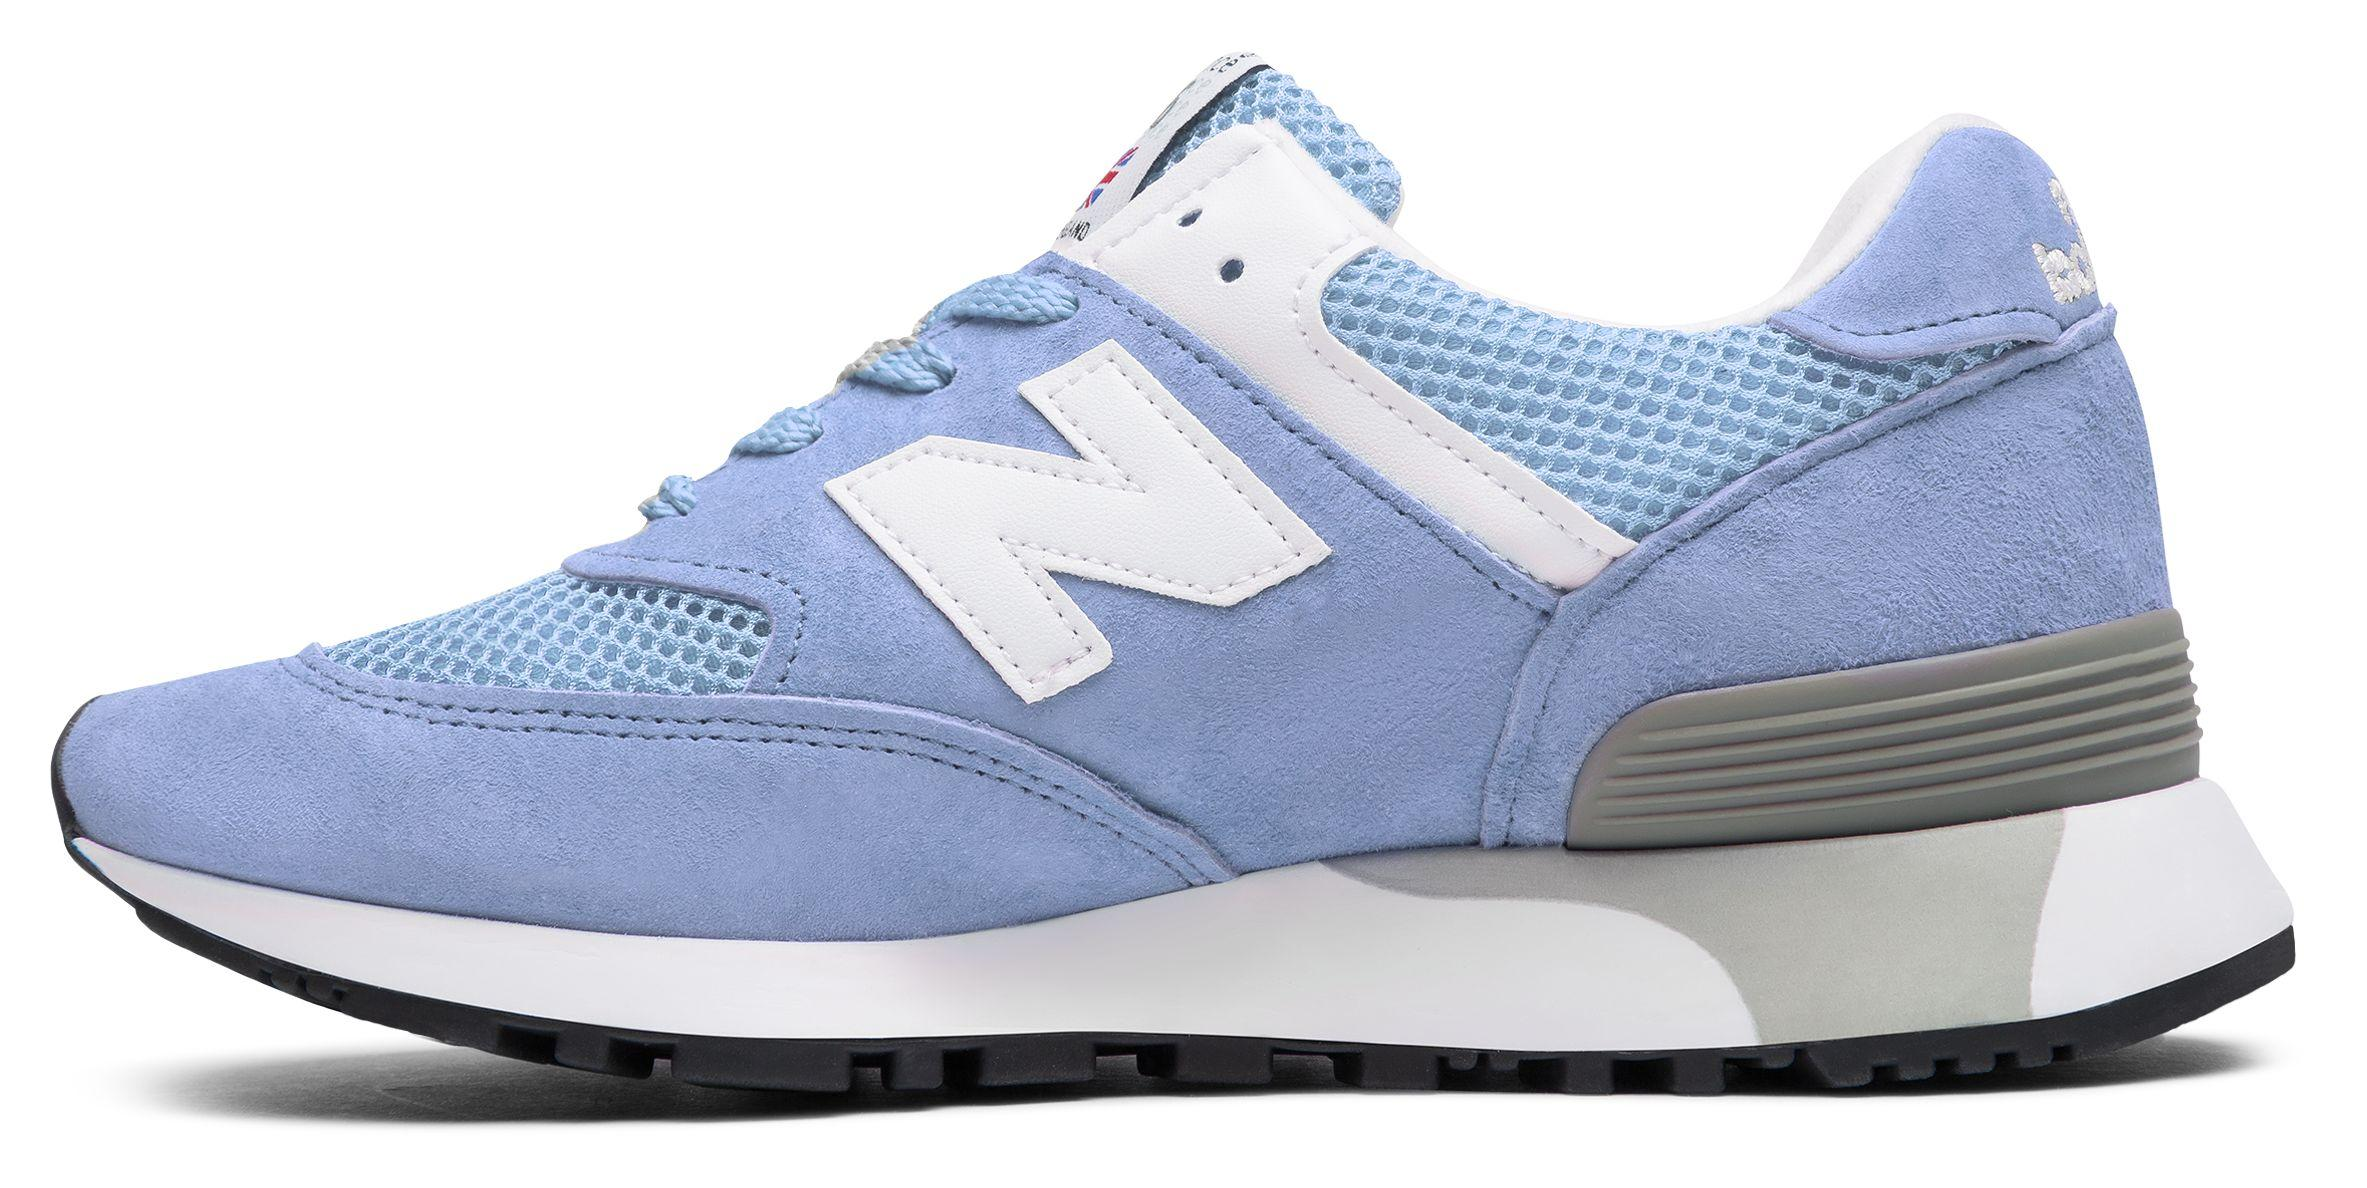 4e205c9306ae2 New Balance New Balance 576 Made In Uk Shoes in Blue - Lyst